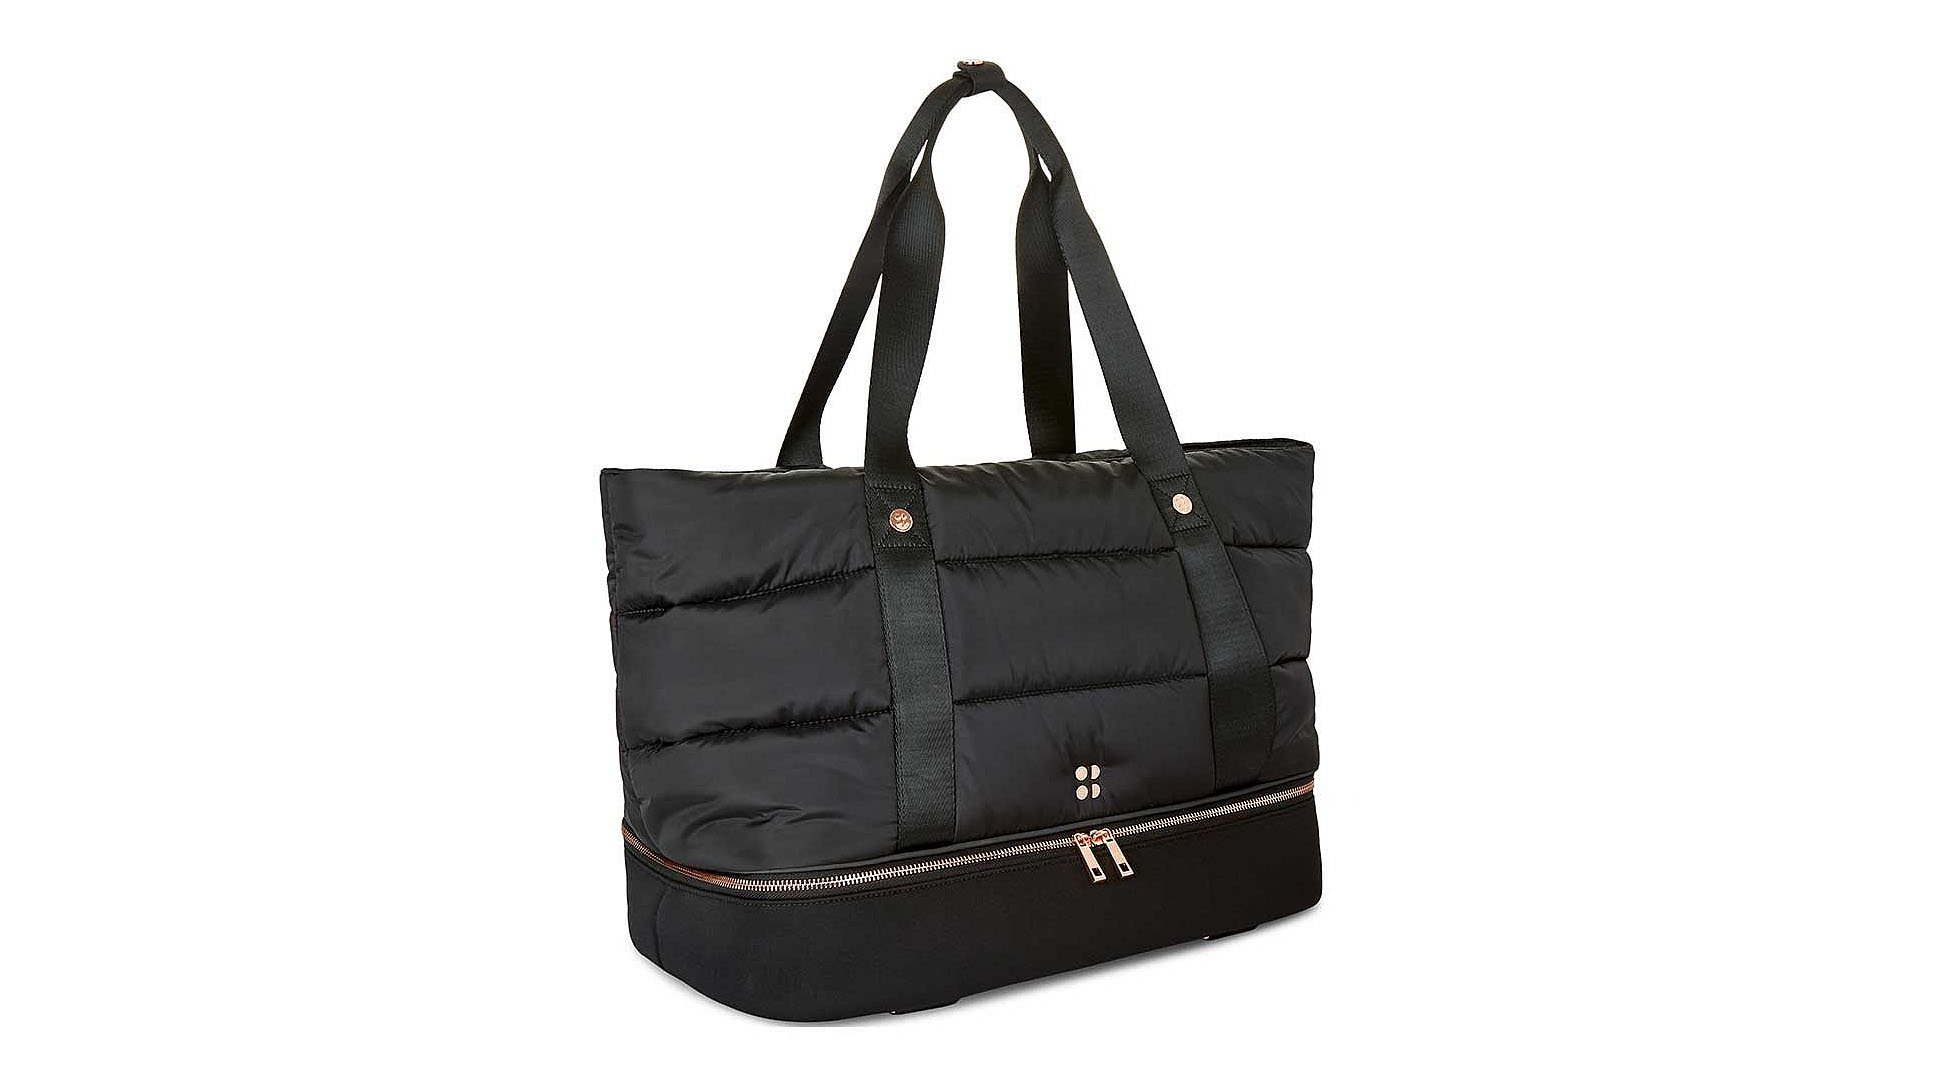 58b08c30148b Best gym bags 2019  The most stylish and practical gym bags to buy ...